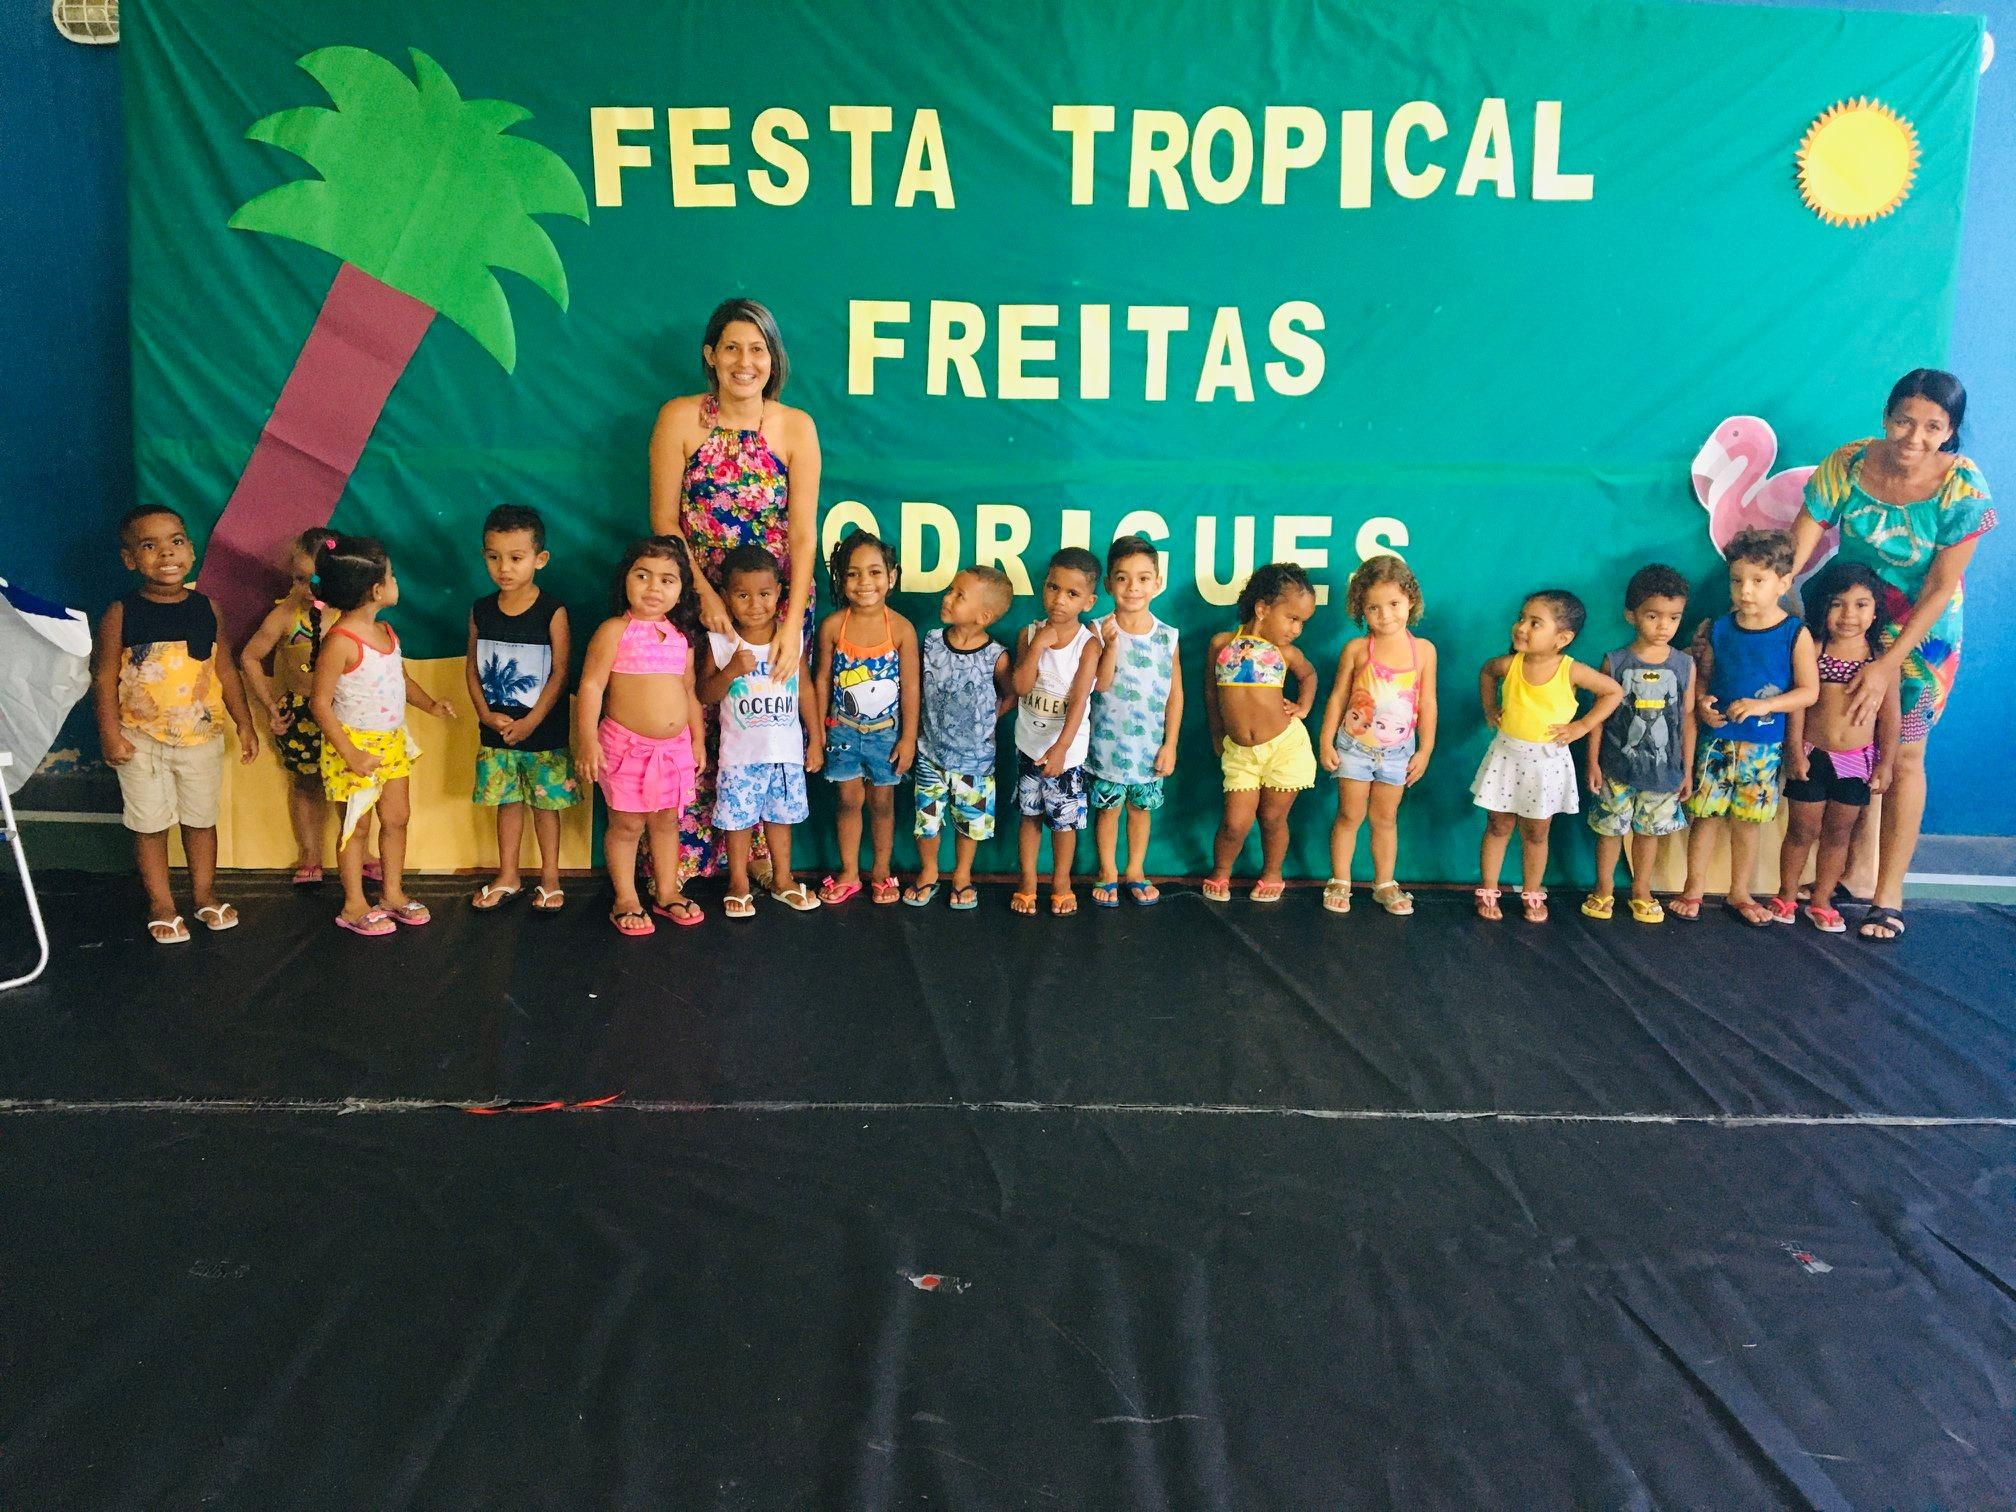 festa-tropical-gb-118-097e9